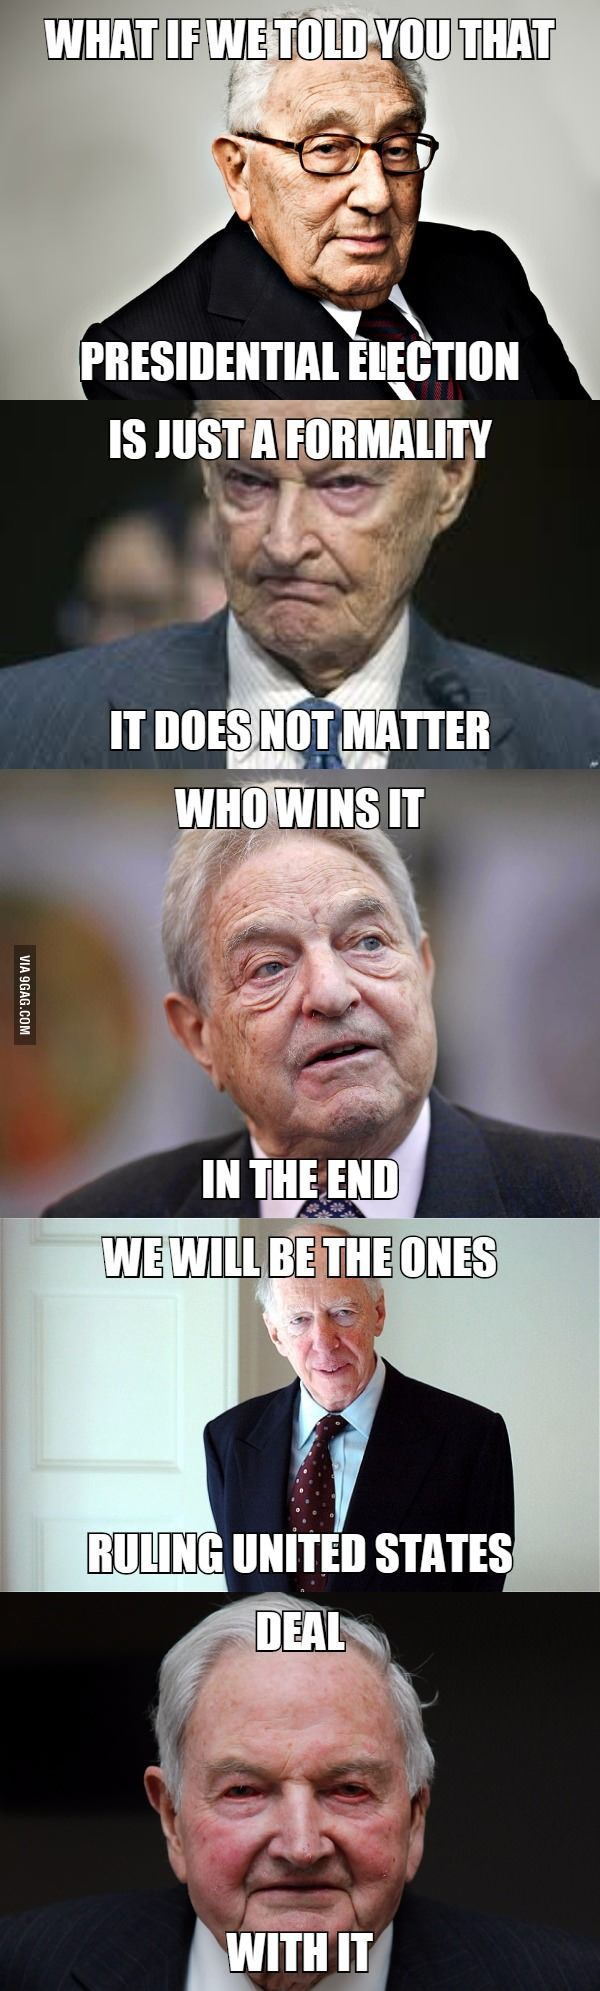 When will people realize that this is true? These people have saturated our govt. with Communist judges and politicians who will thwart any and all efforts to restore our Republic. Trump is no hero either. He is complicit in this game. There probably won't be any wall put up, Obamacare will remain, etc.